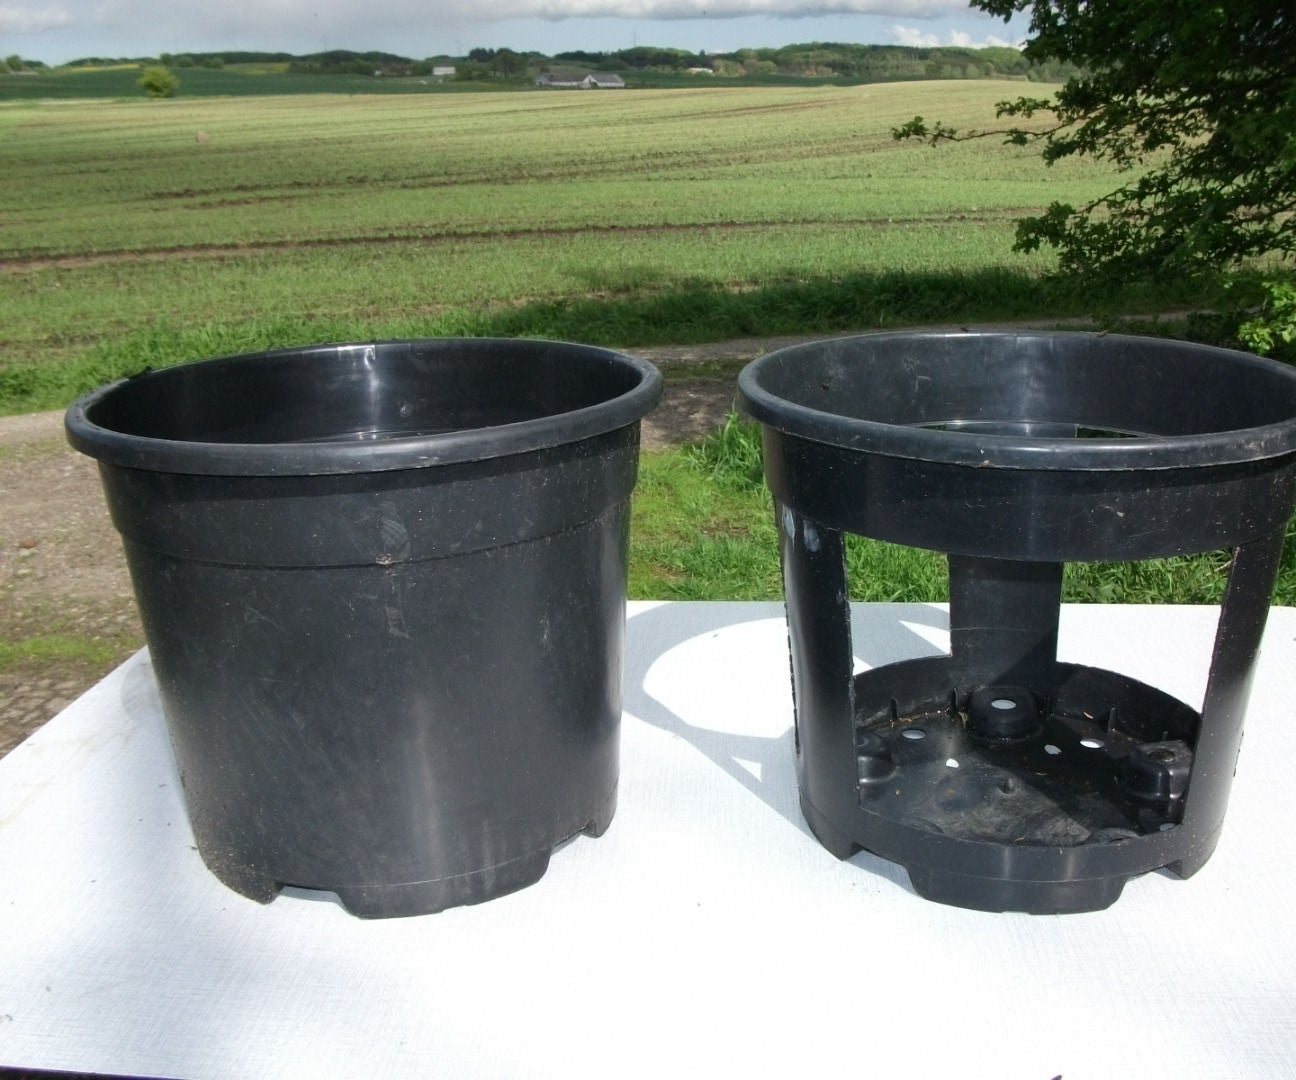 Growing Potatoes In Buckets 4 Steps With Pictures Instructables